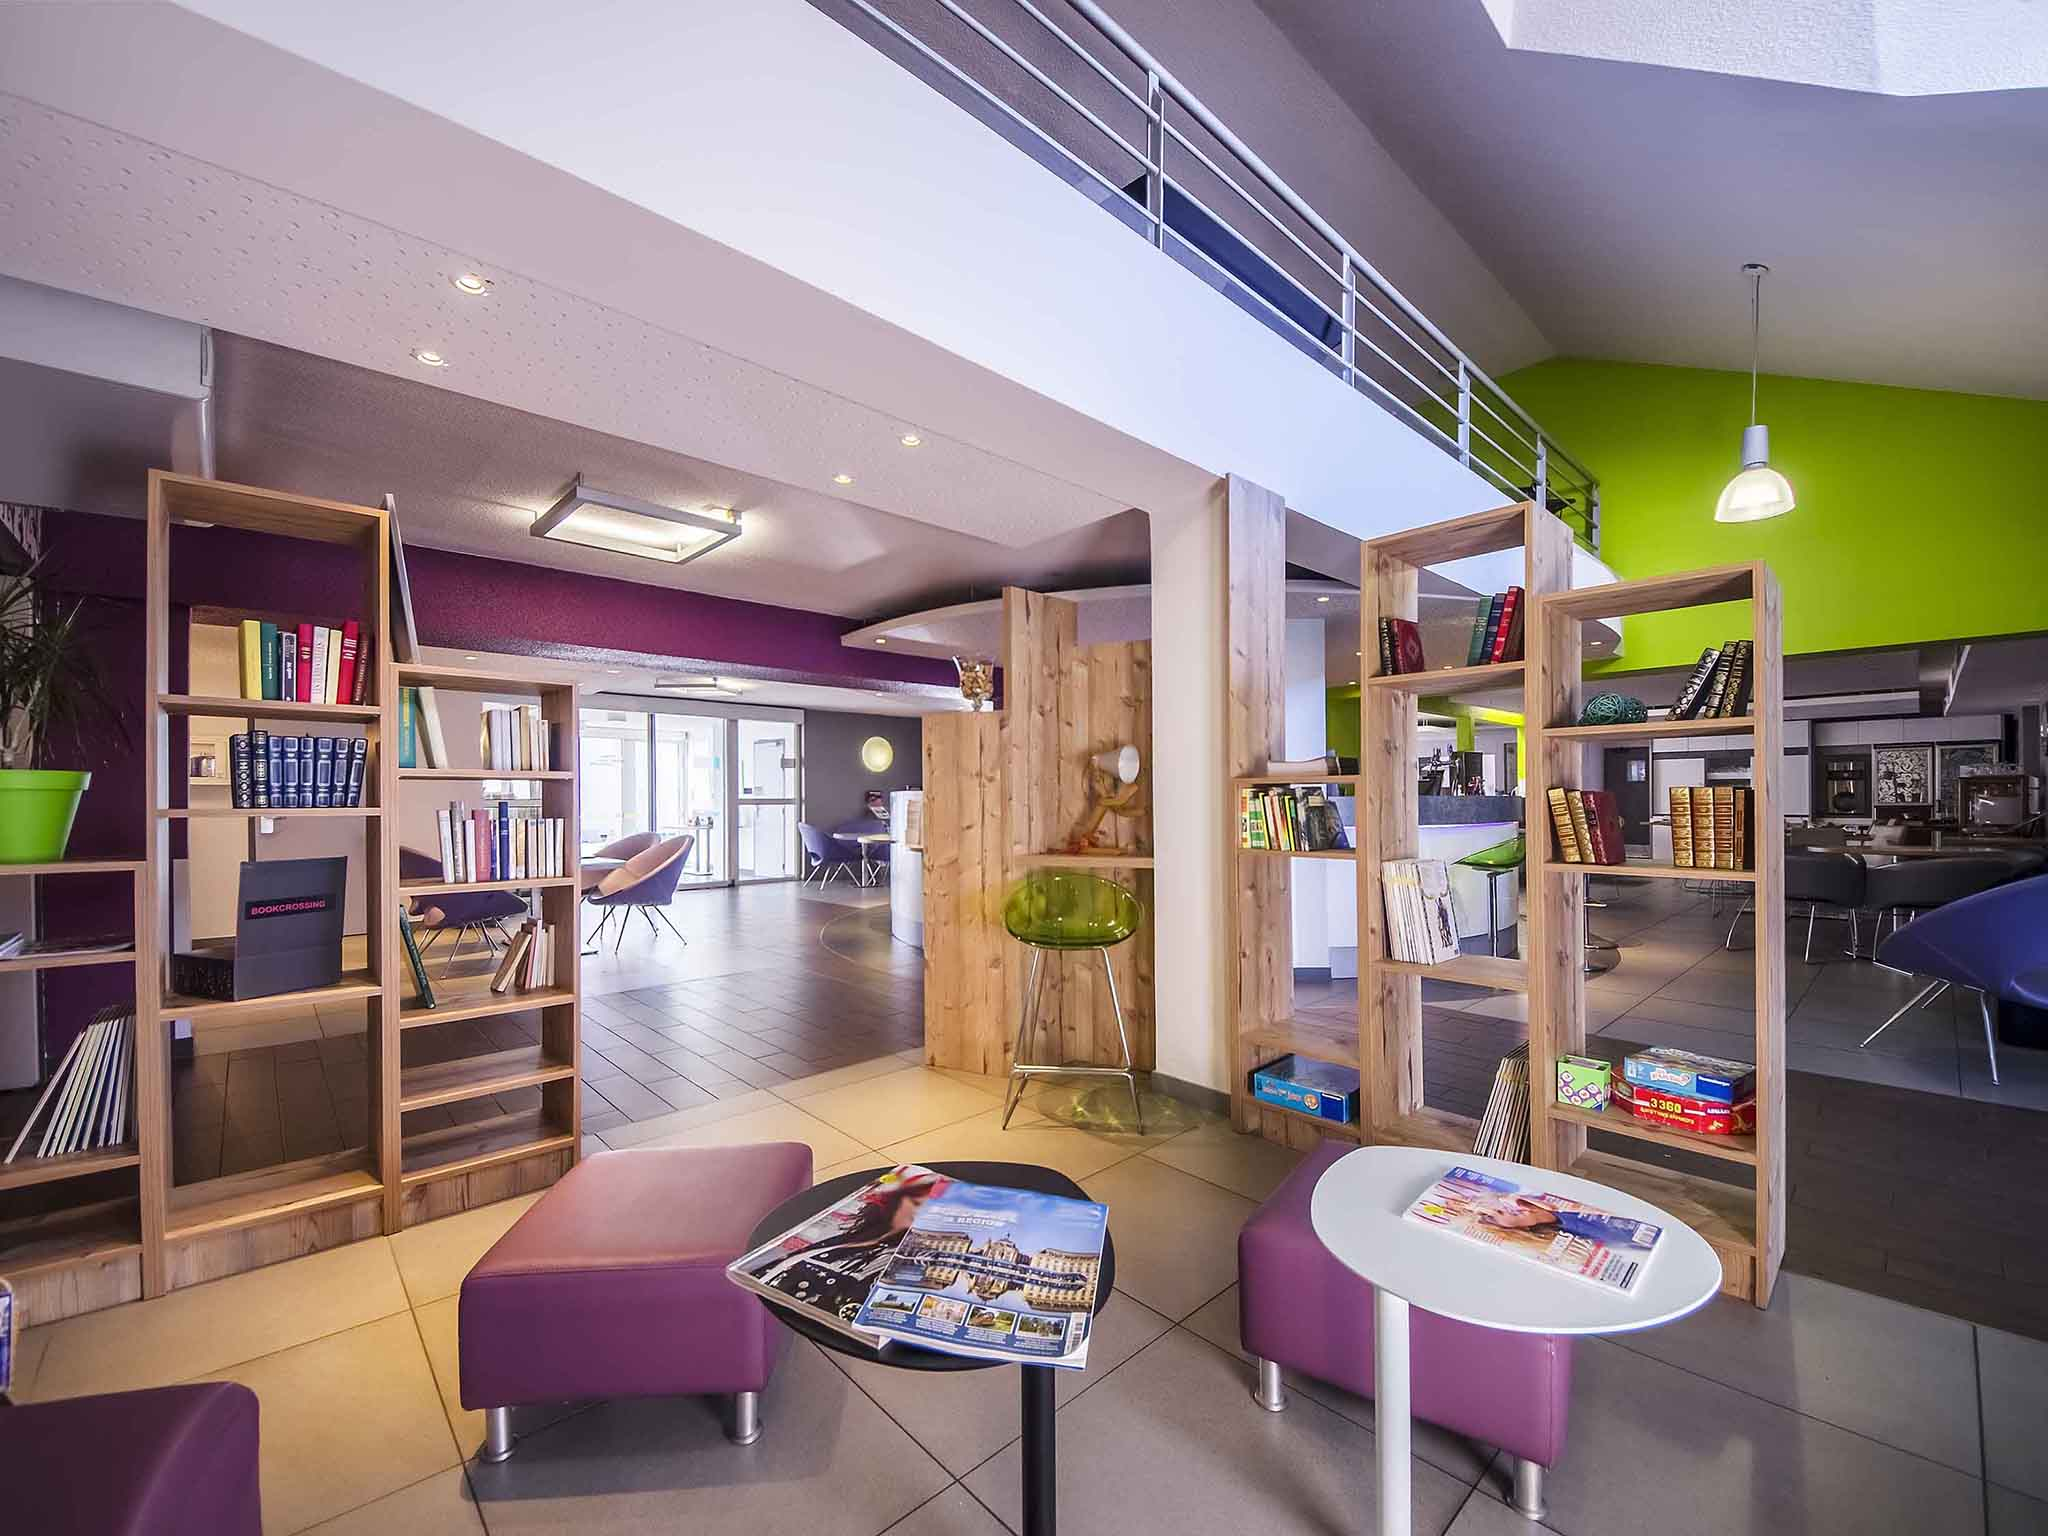 Otel – ibis Styles Brive Ouest